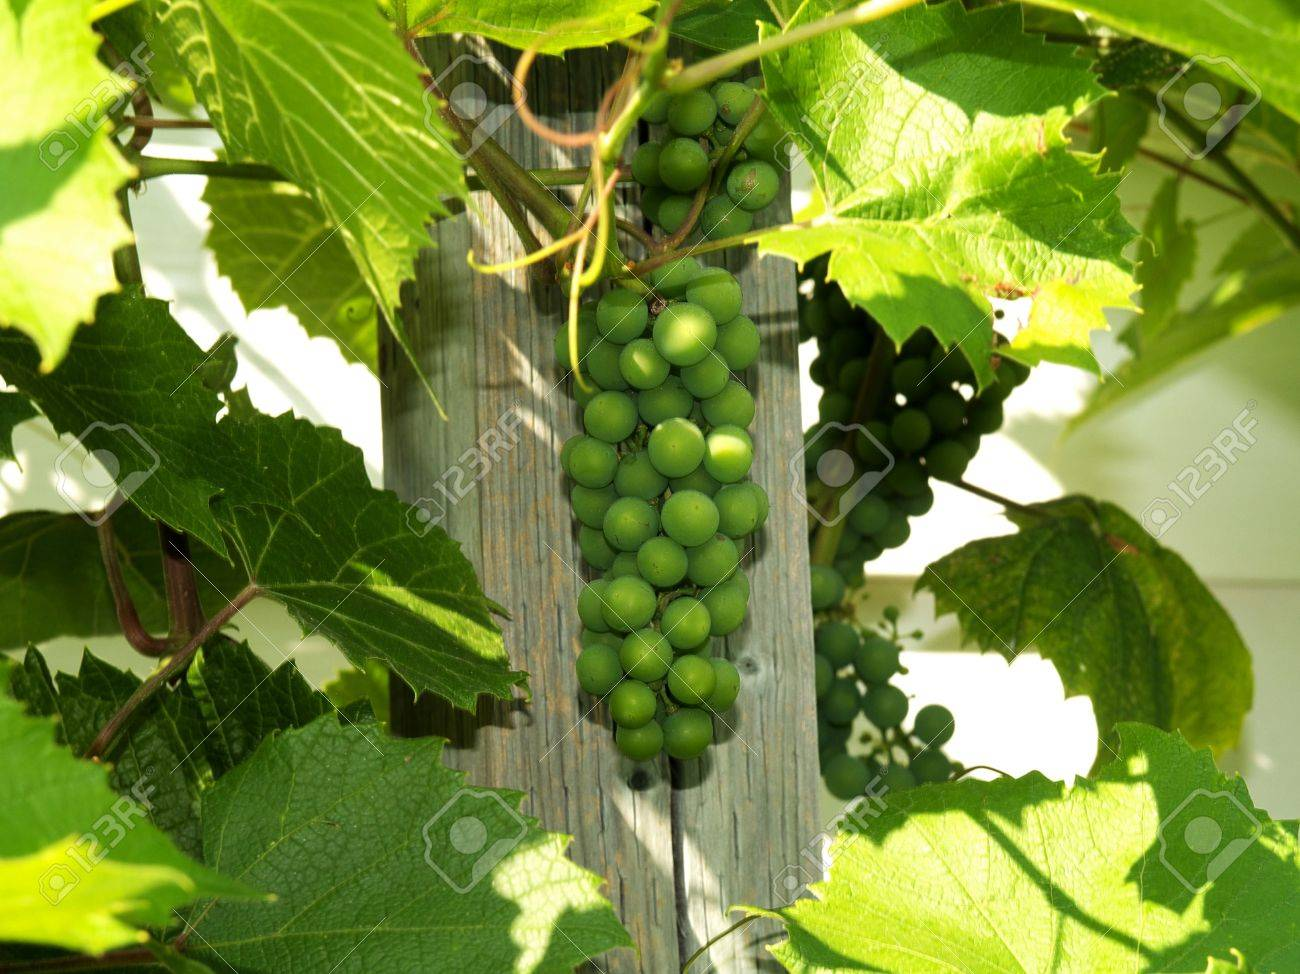 Unripe green grape bunches mid summer next to pole in shade Stock Photo - 3561162